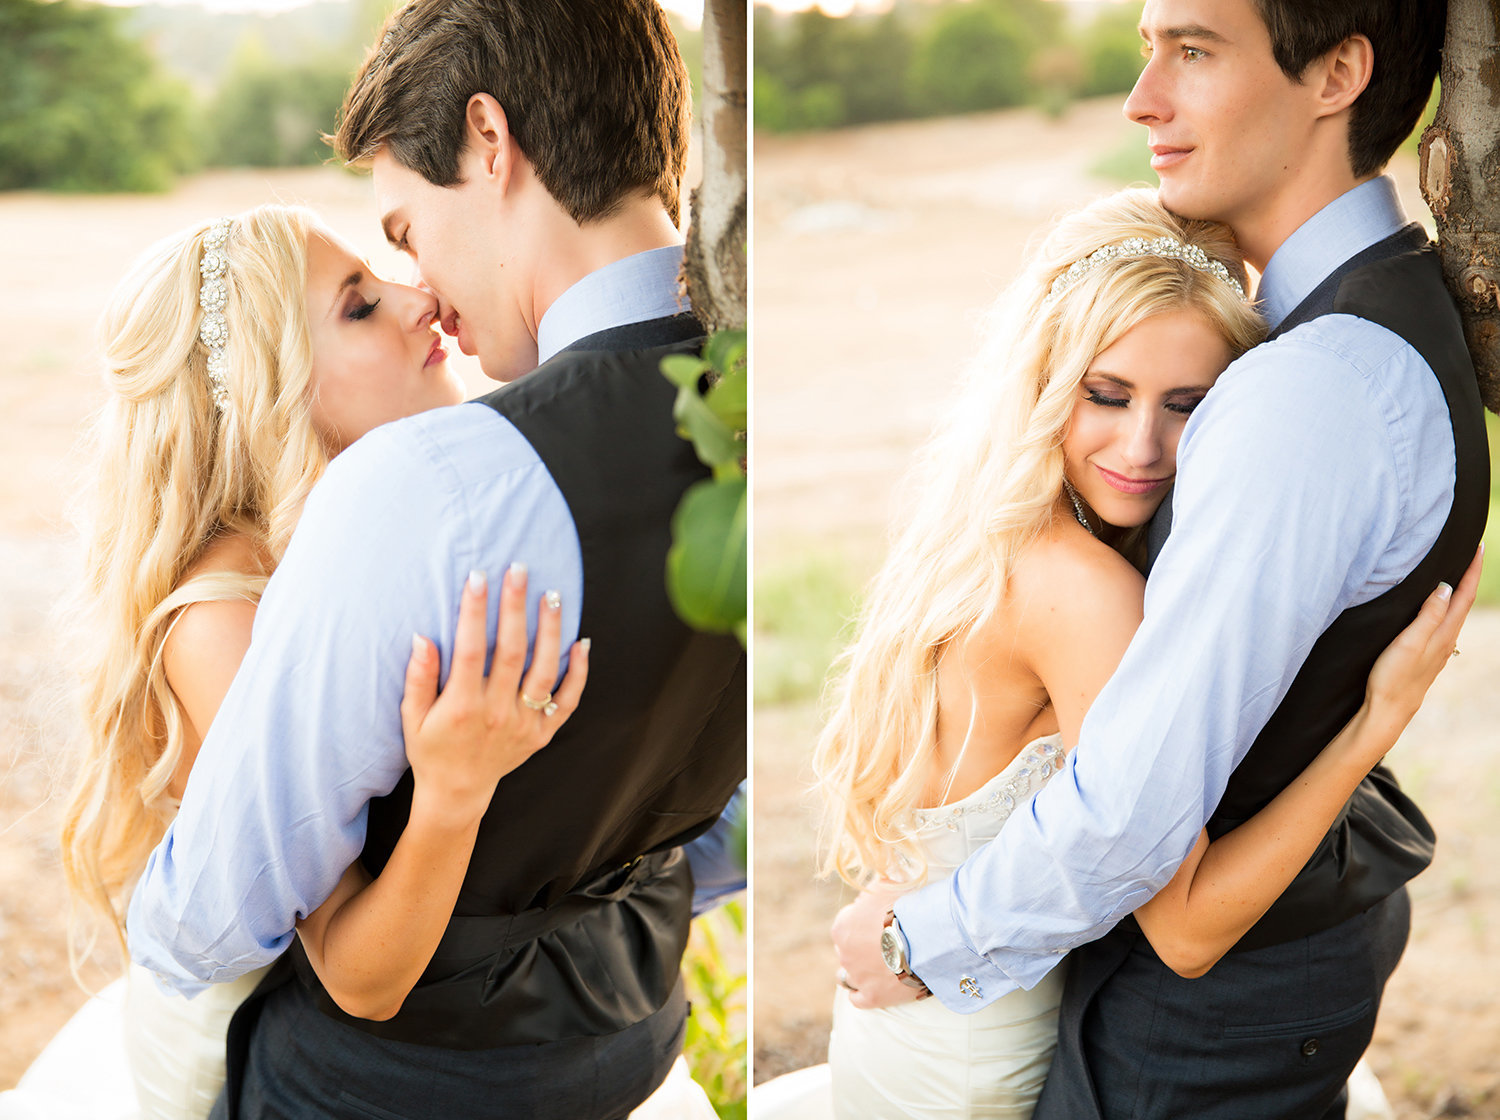 Creative posing ideas for brides and grooms